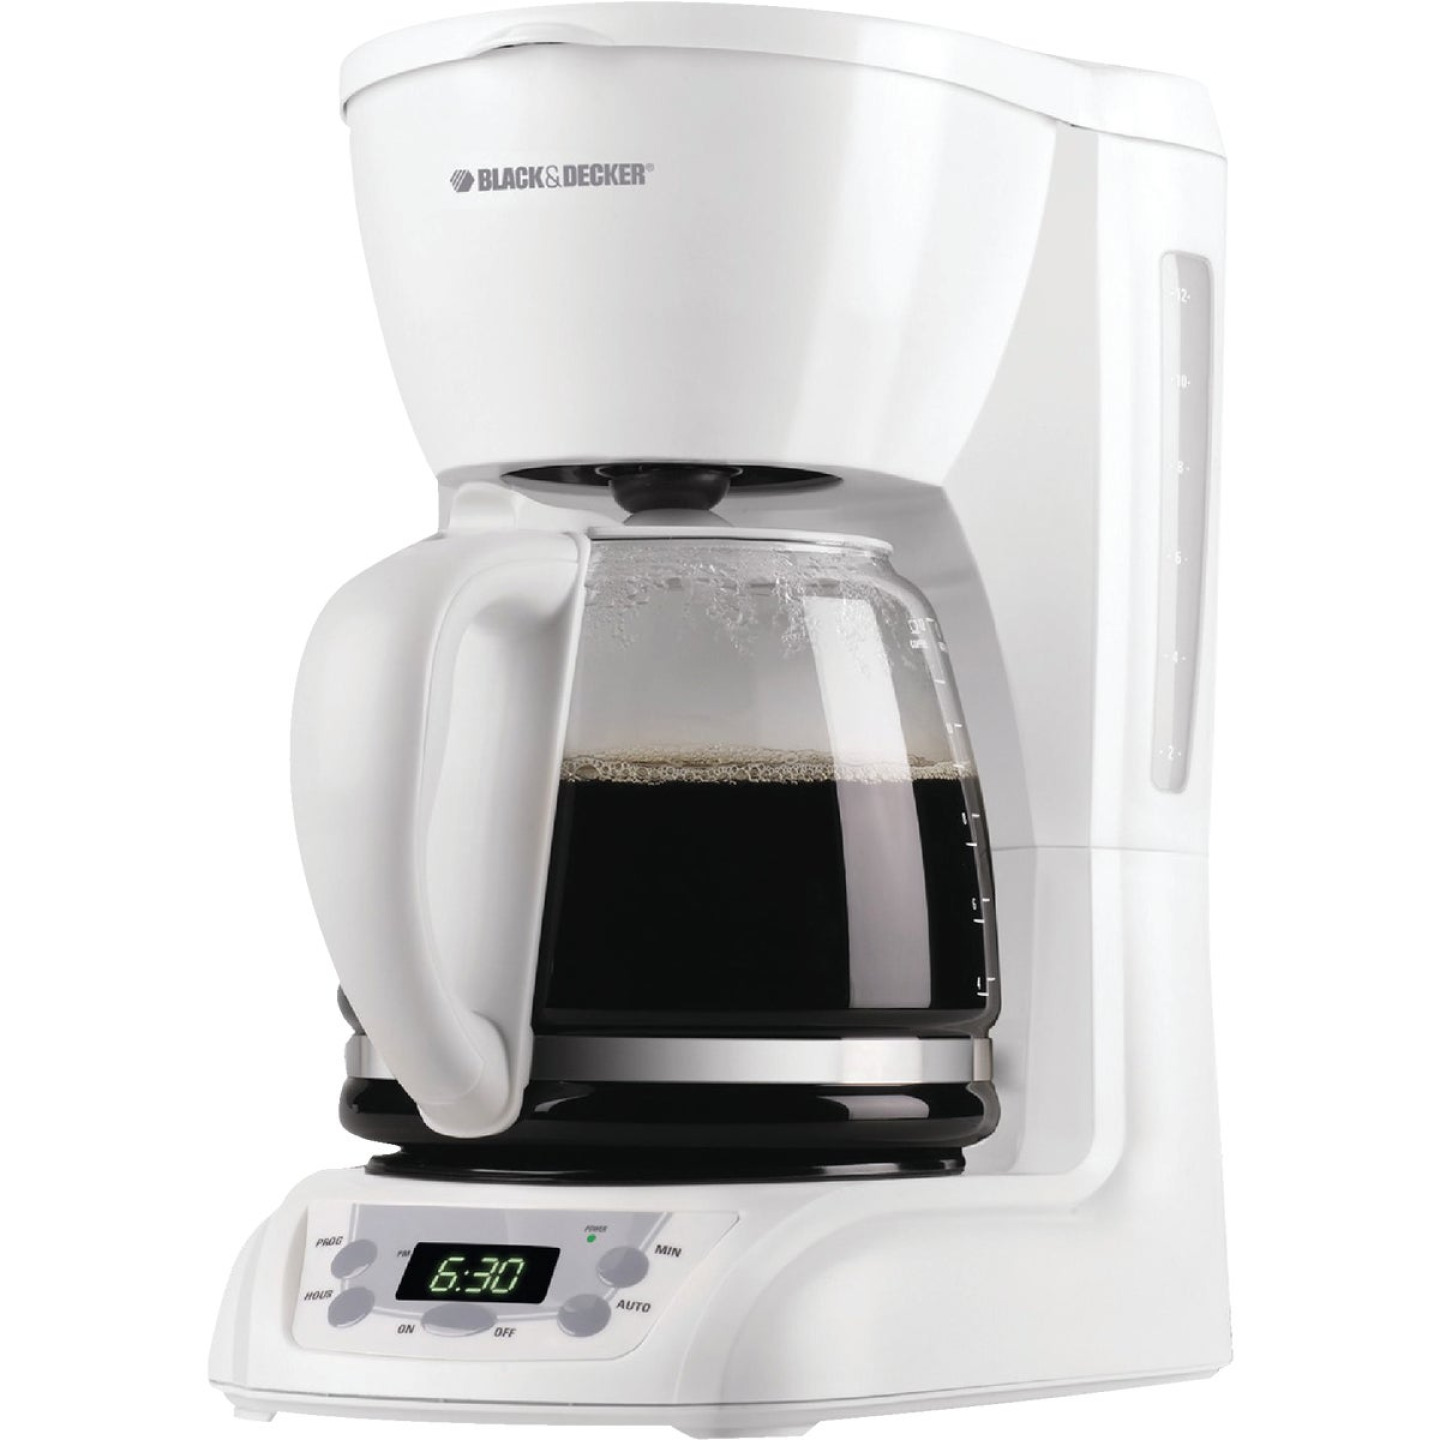 Black & Decker 12 Cup Programmable White Coffee Maker Image 1